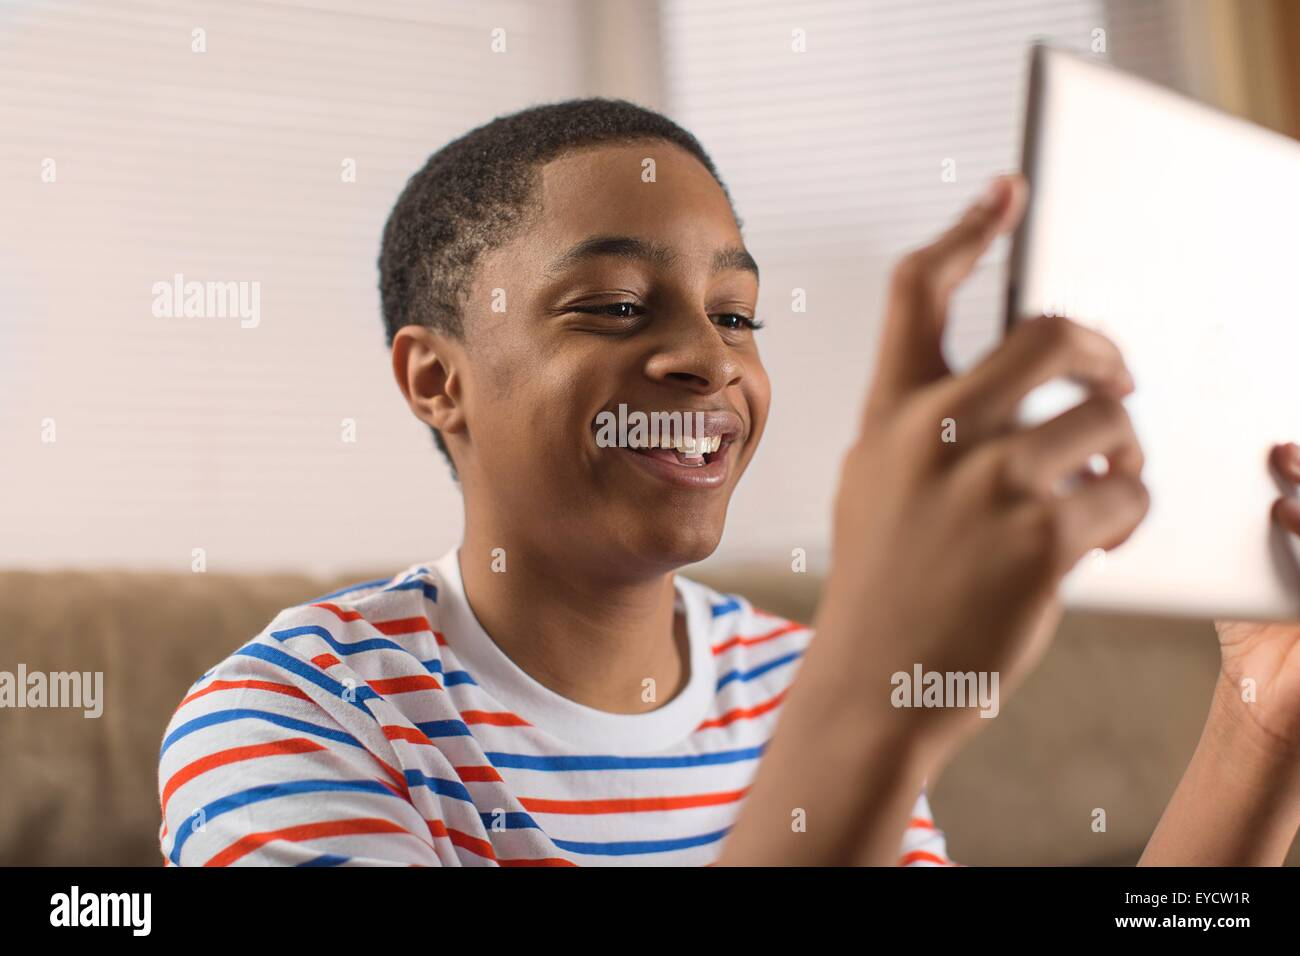 Teenage boy posing for digital tablet selfie on sofa - Stock Image